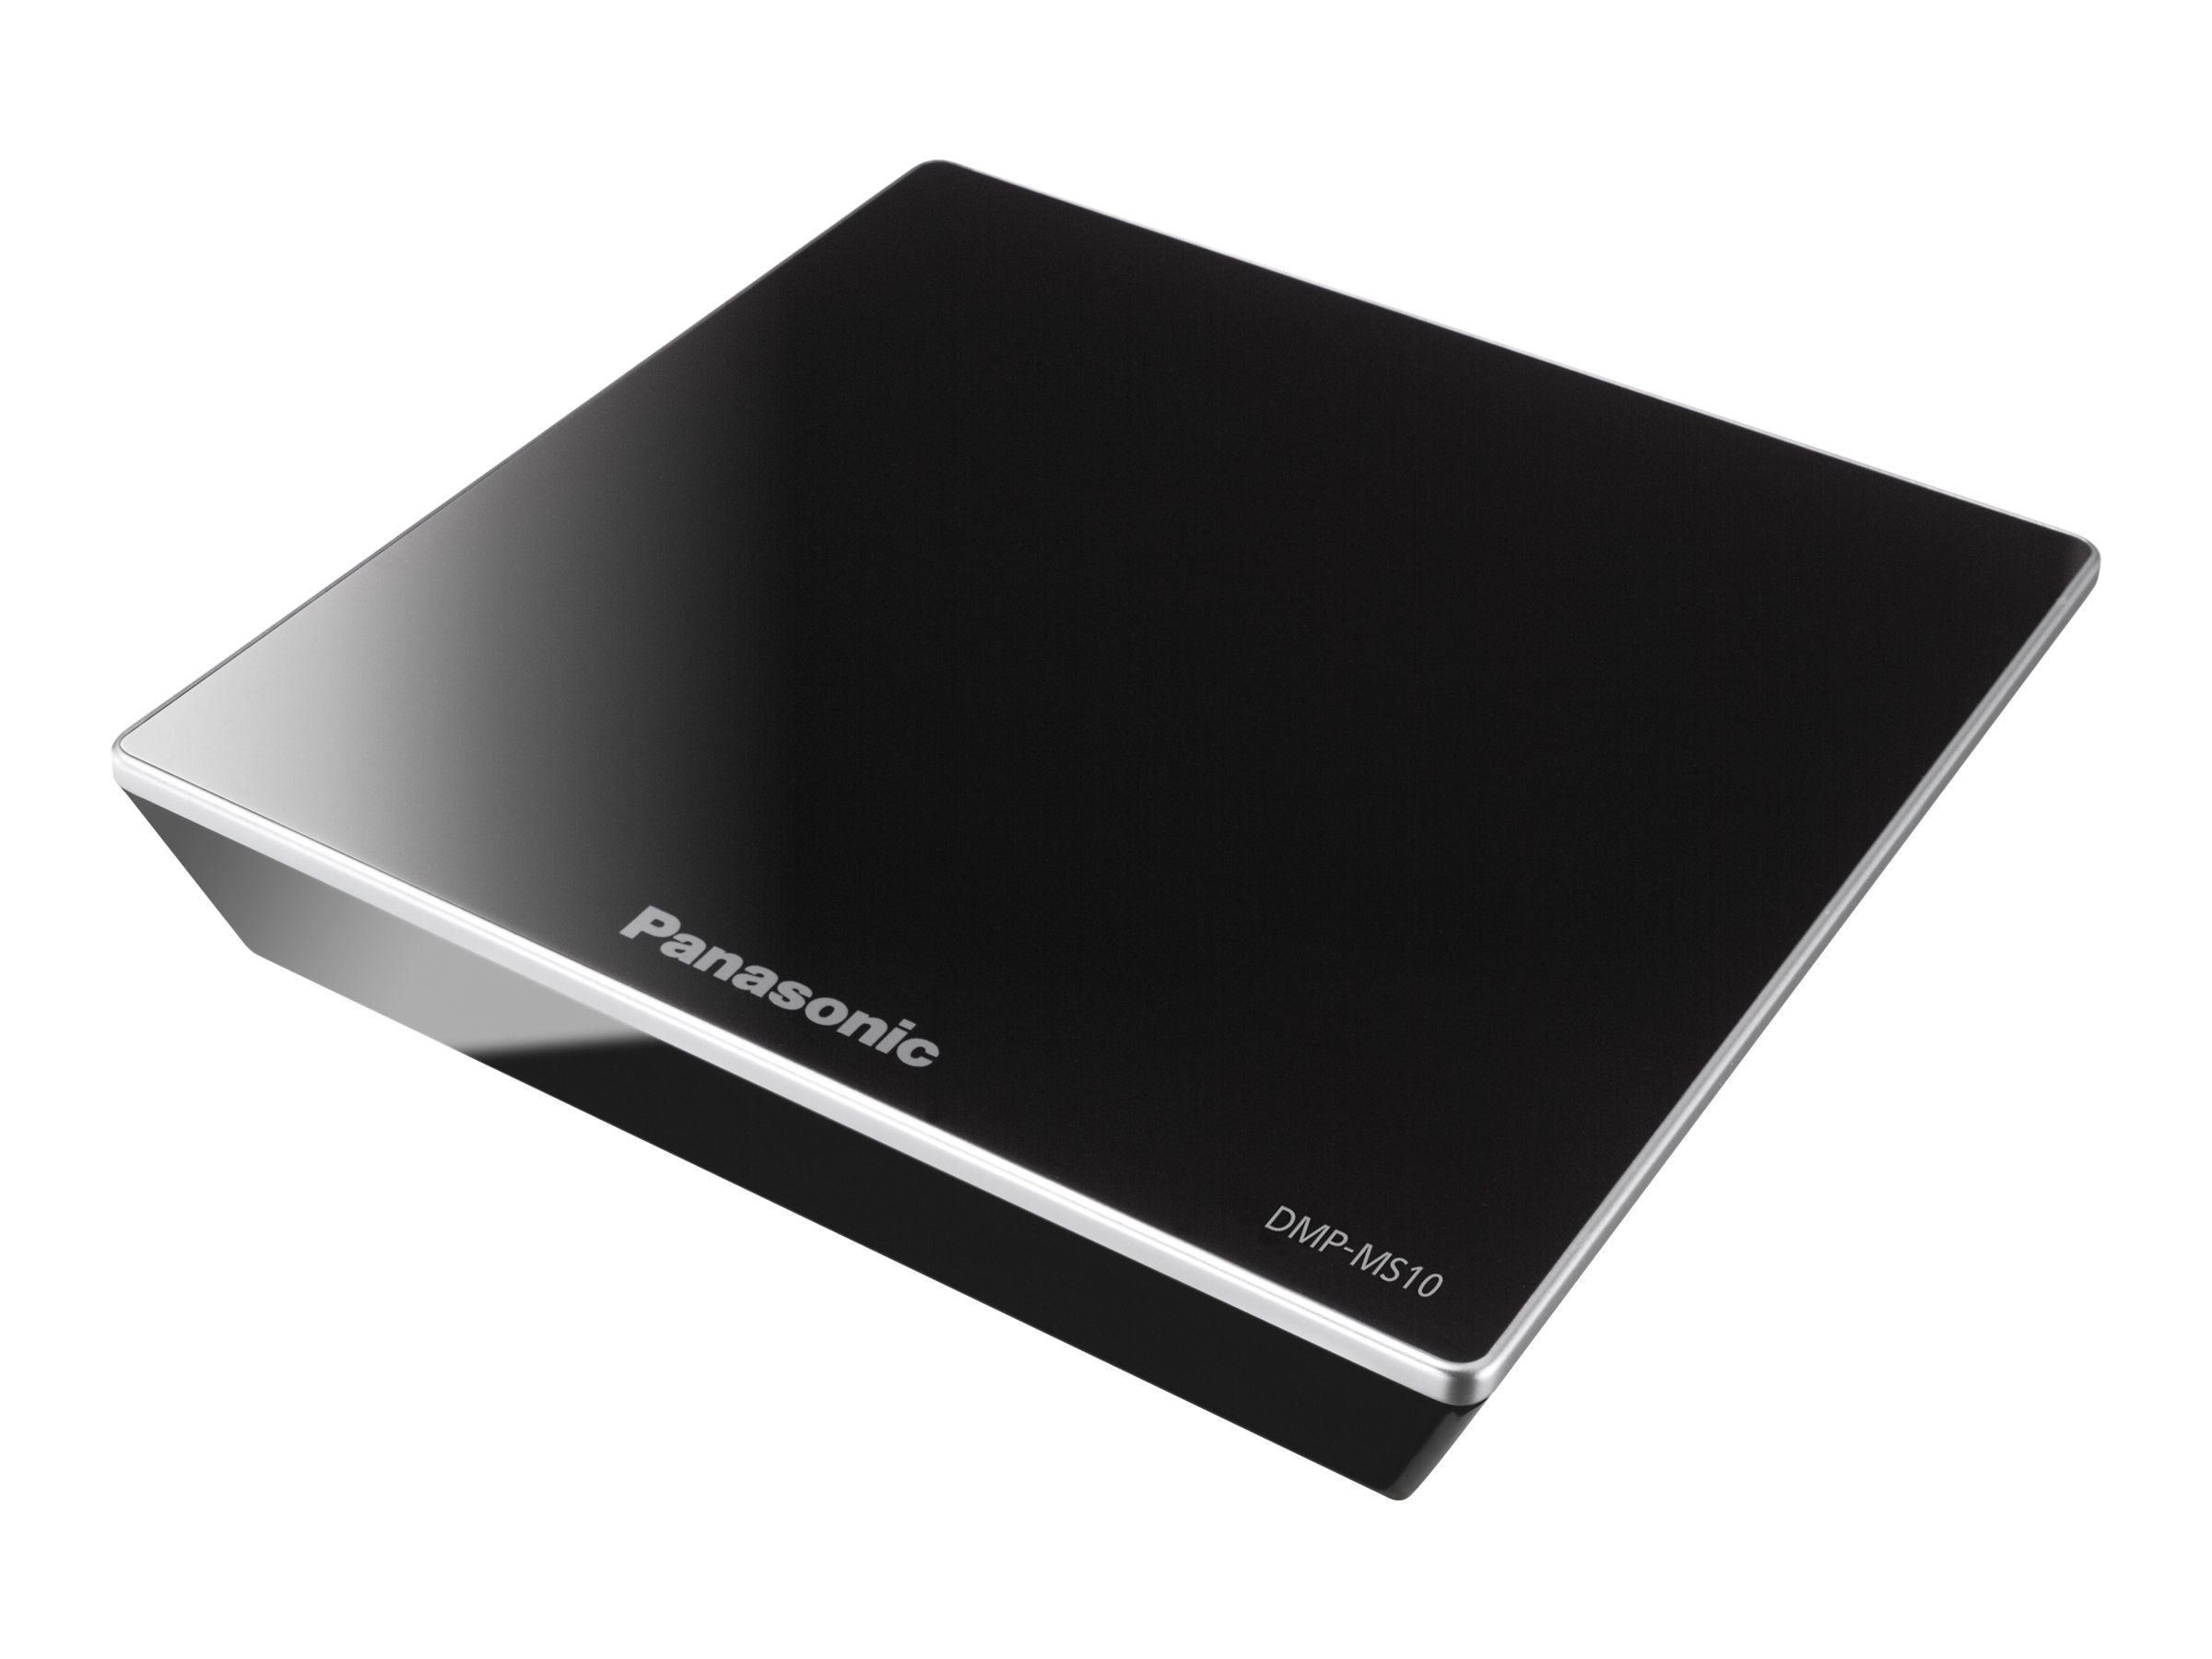 Panasonic DMP-MS10 Streaming Media Player, DMP-MS10, 15413684, Streaming Media Players